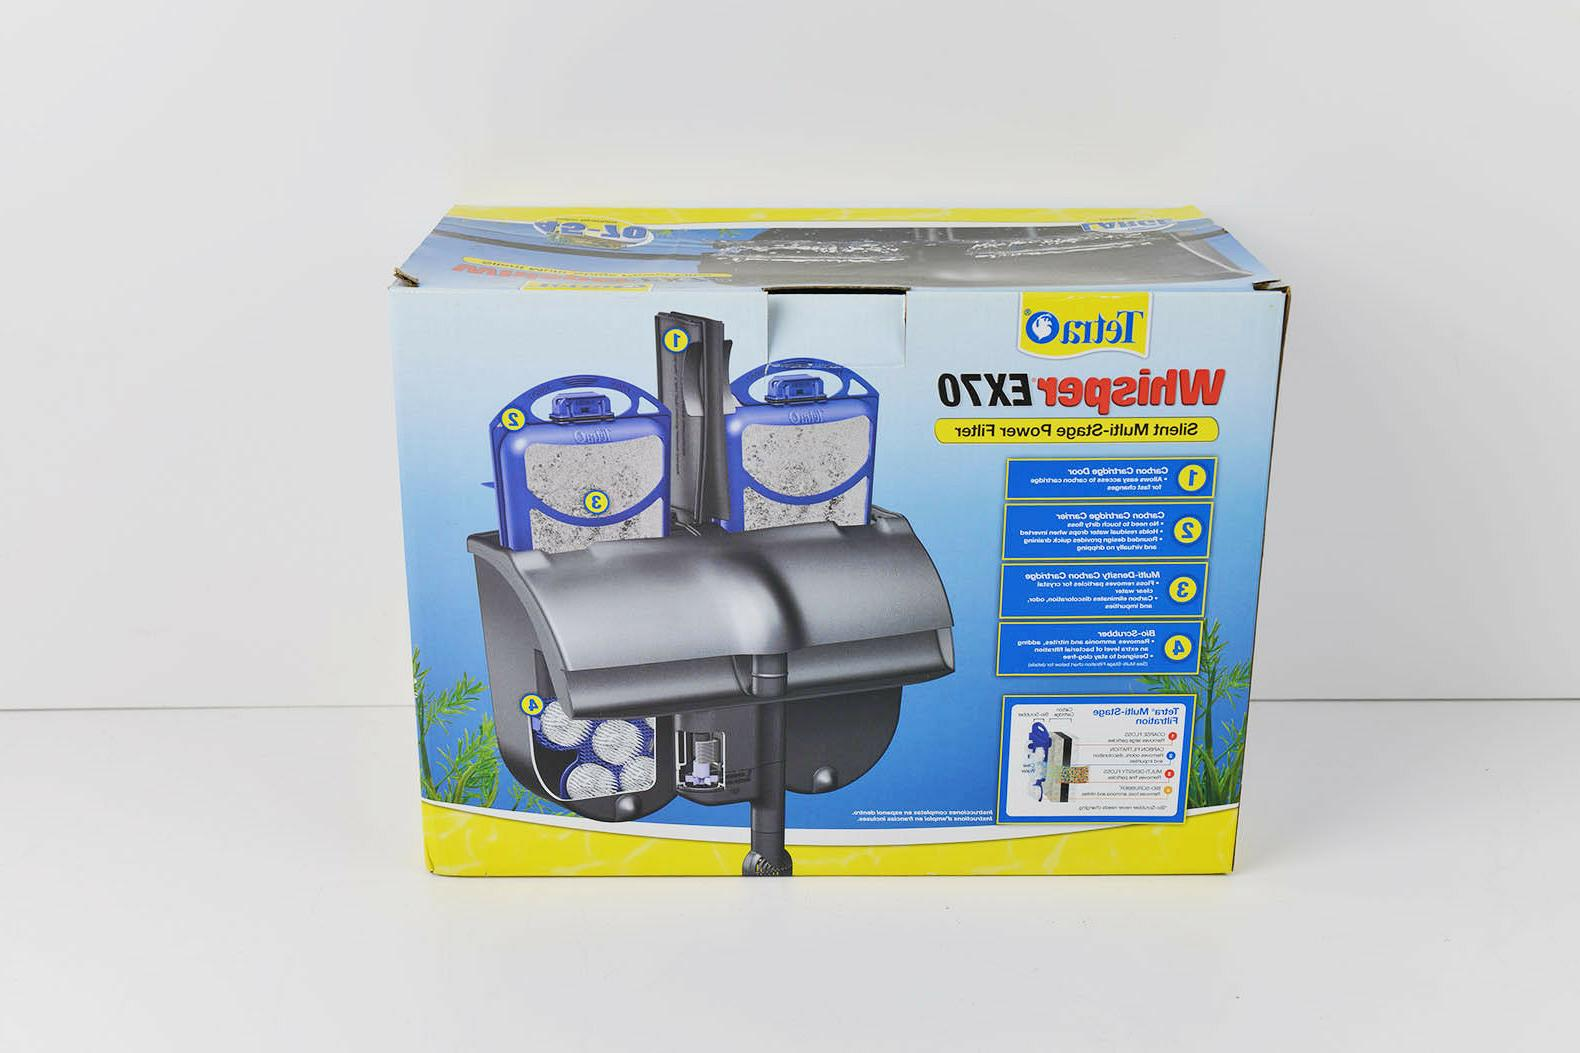 New EX70 Silent Power Fish Tank Fits 45-70 Gallon Aquariums